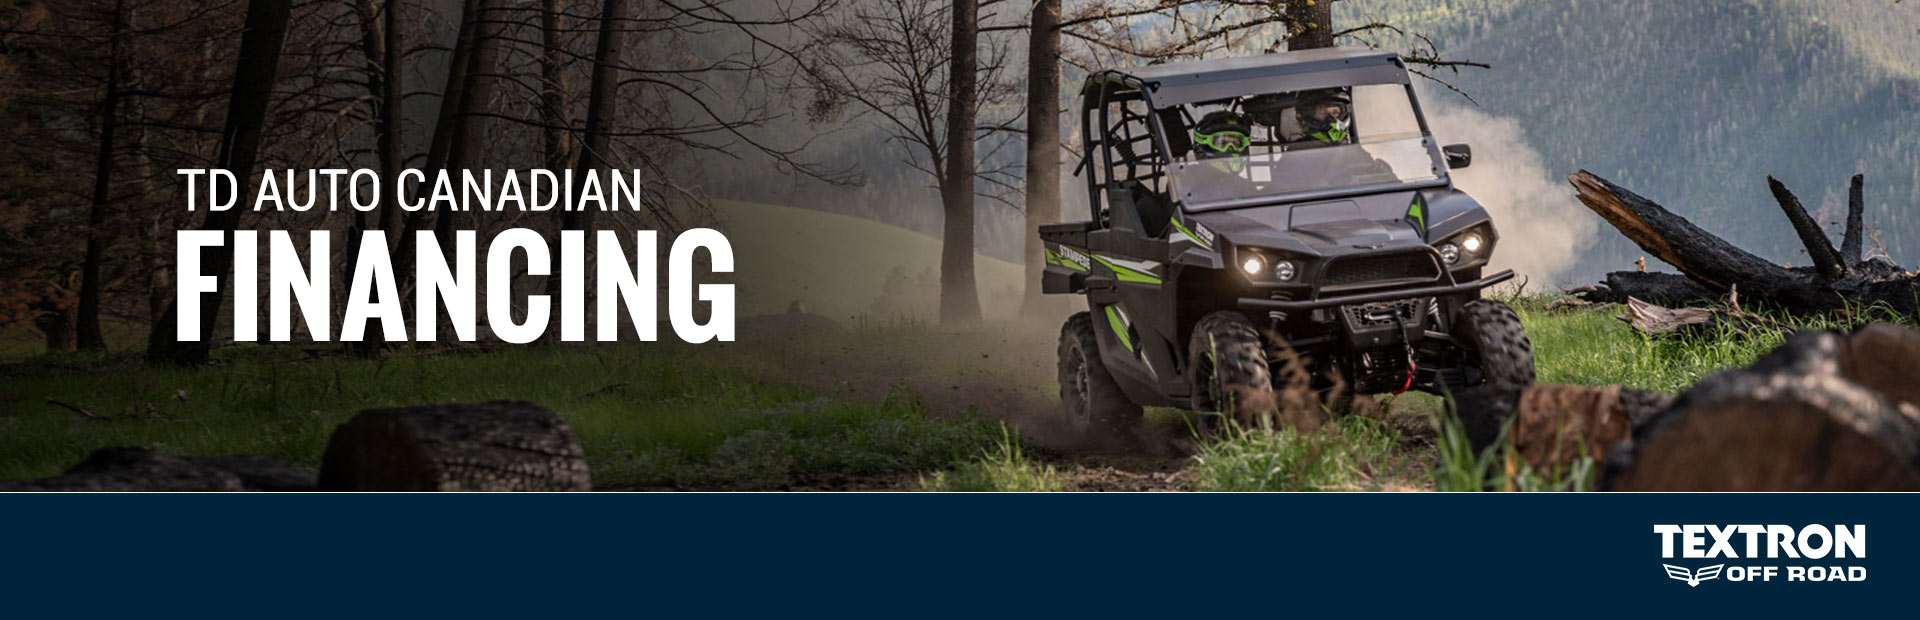 Textron Off Road: TD Auto Canadian Financing